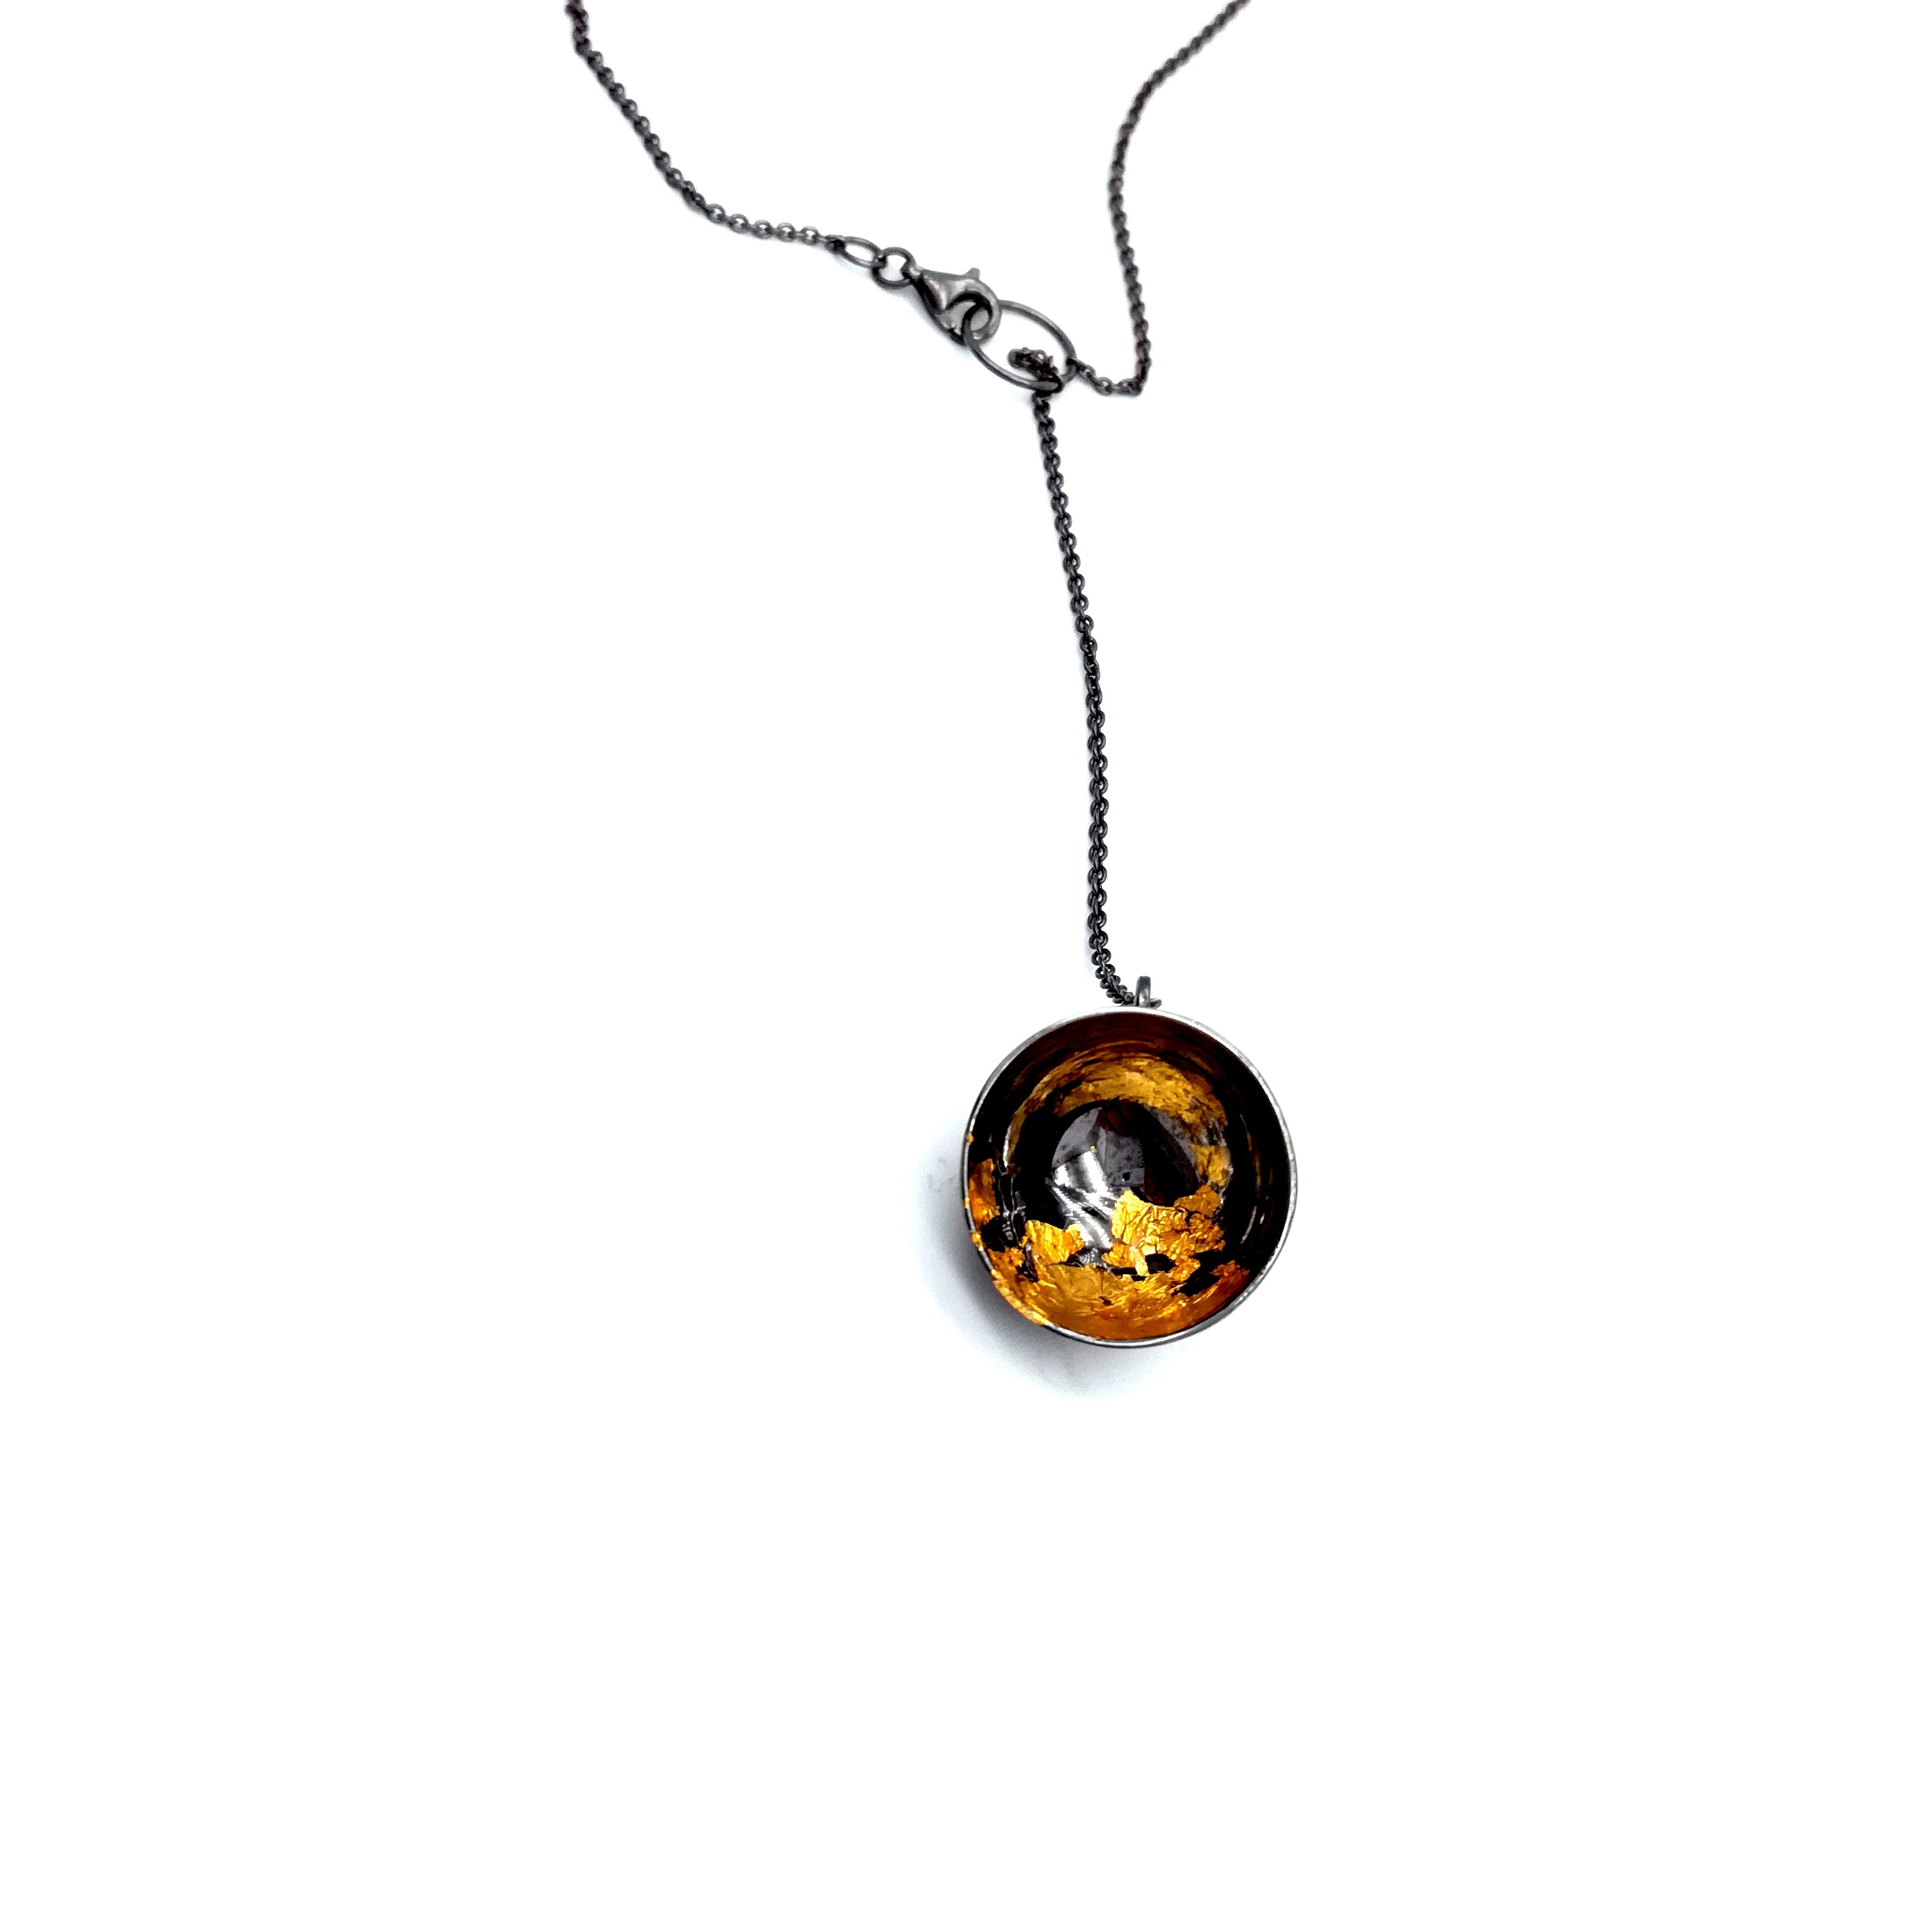 Silver necklace 925 black rhodium plated with resin and gold leaf 22K